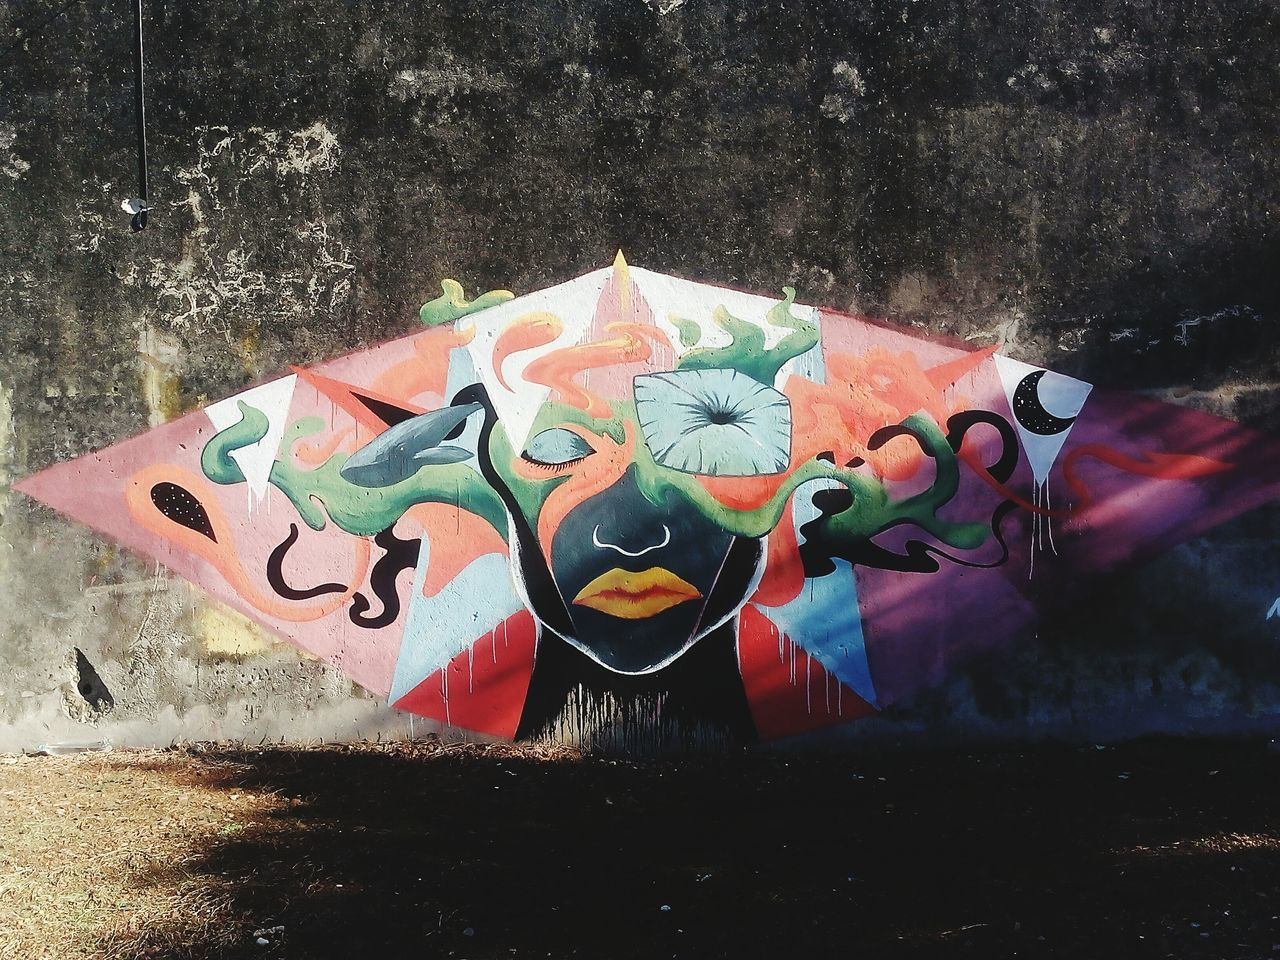 Outdoors Close-up No People Spray Paint Illuminated Day EyeEm Gallery EyeEmNewHere Graffiti Art Art, Drawing, Creativity Arte Callejero Espontaneo Artecallejero Fragility ;)😍